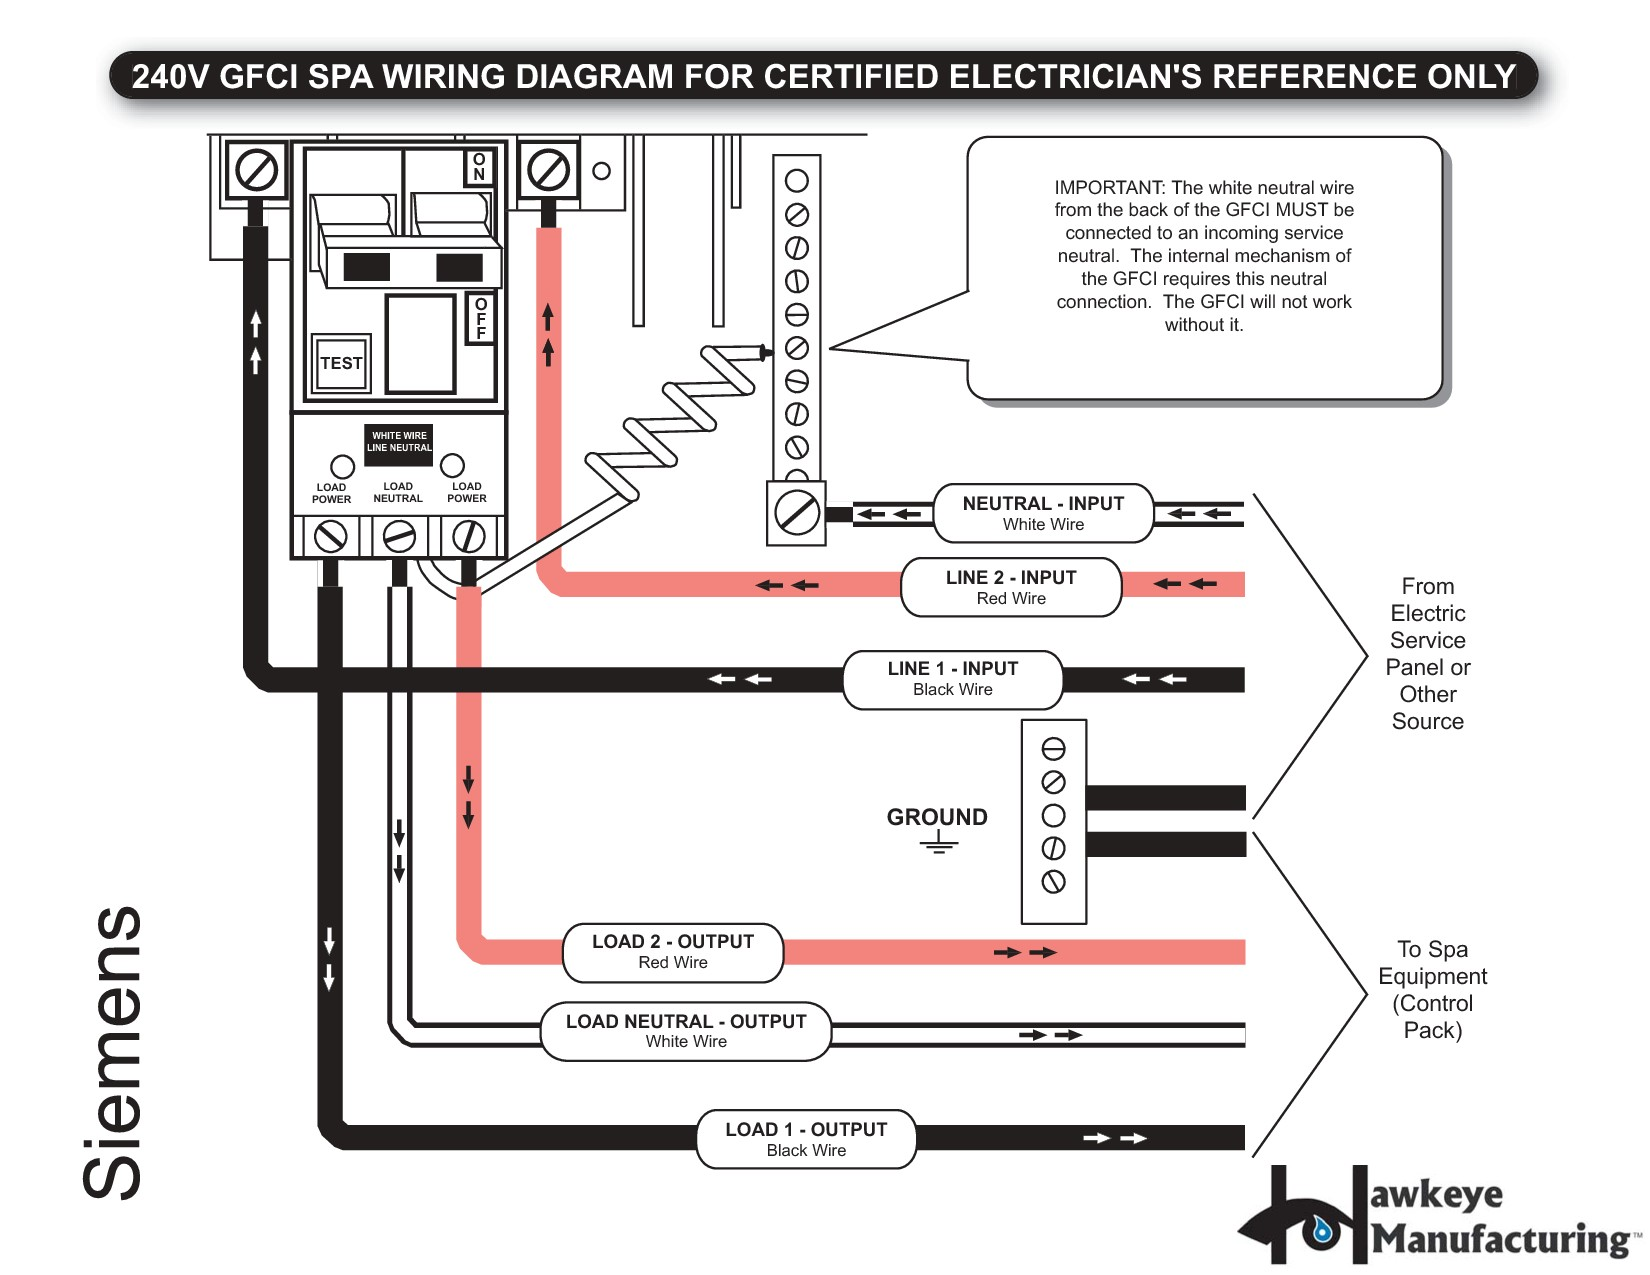 older spa wiring diagrams best wiring library rh 84 princestaash org